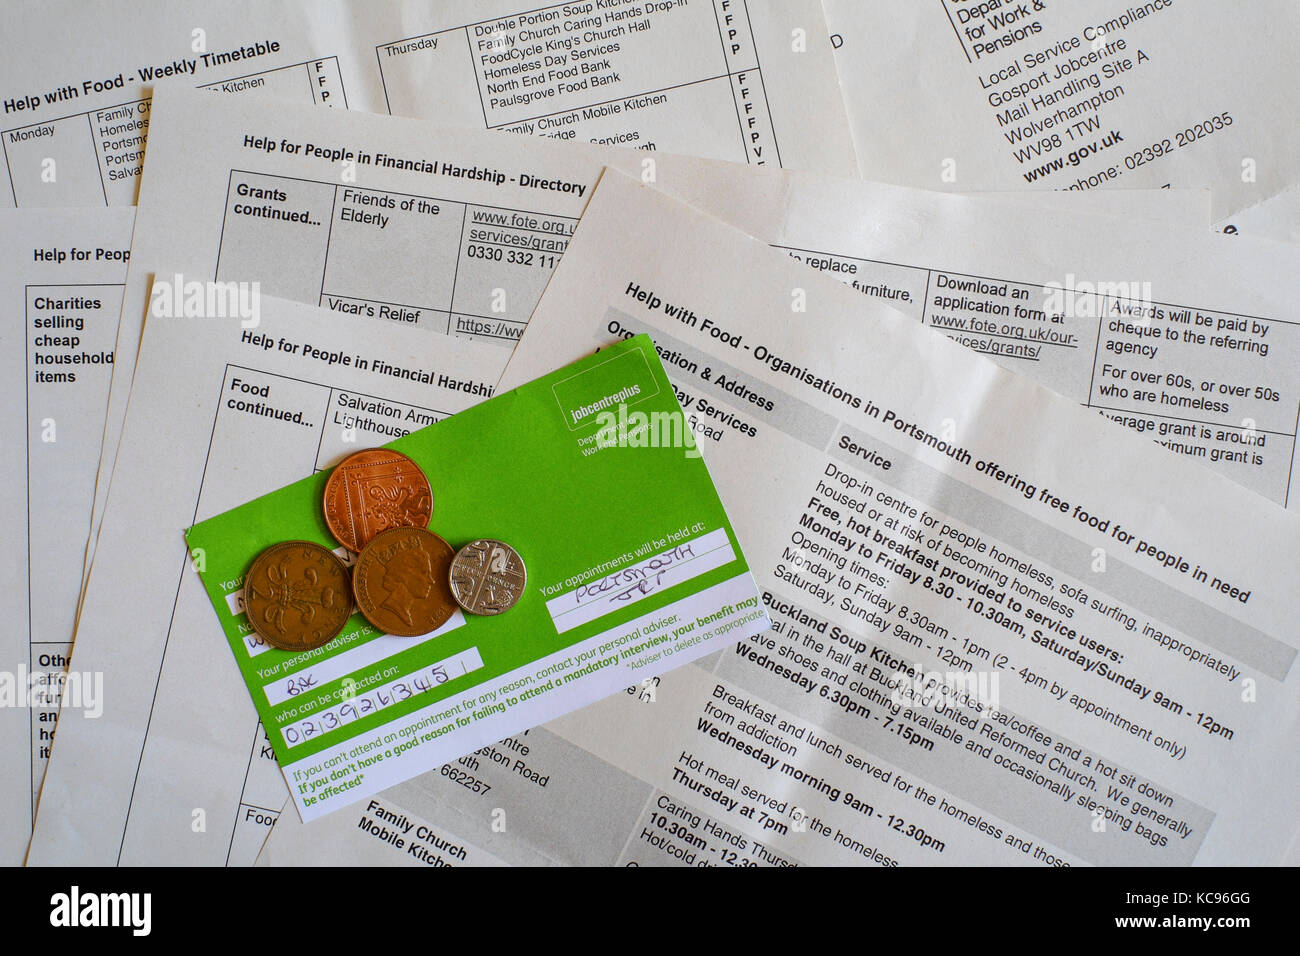 job centre signing on card with coins on top of papers showing food bank and charities details england uk - Stock Image